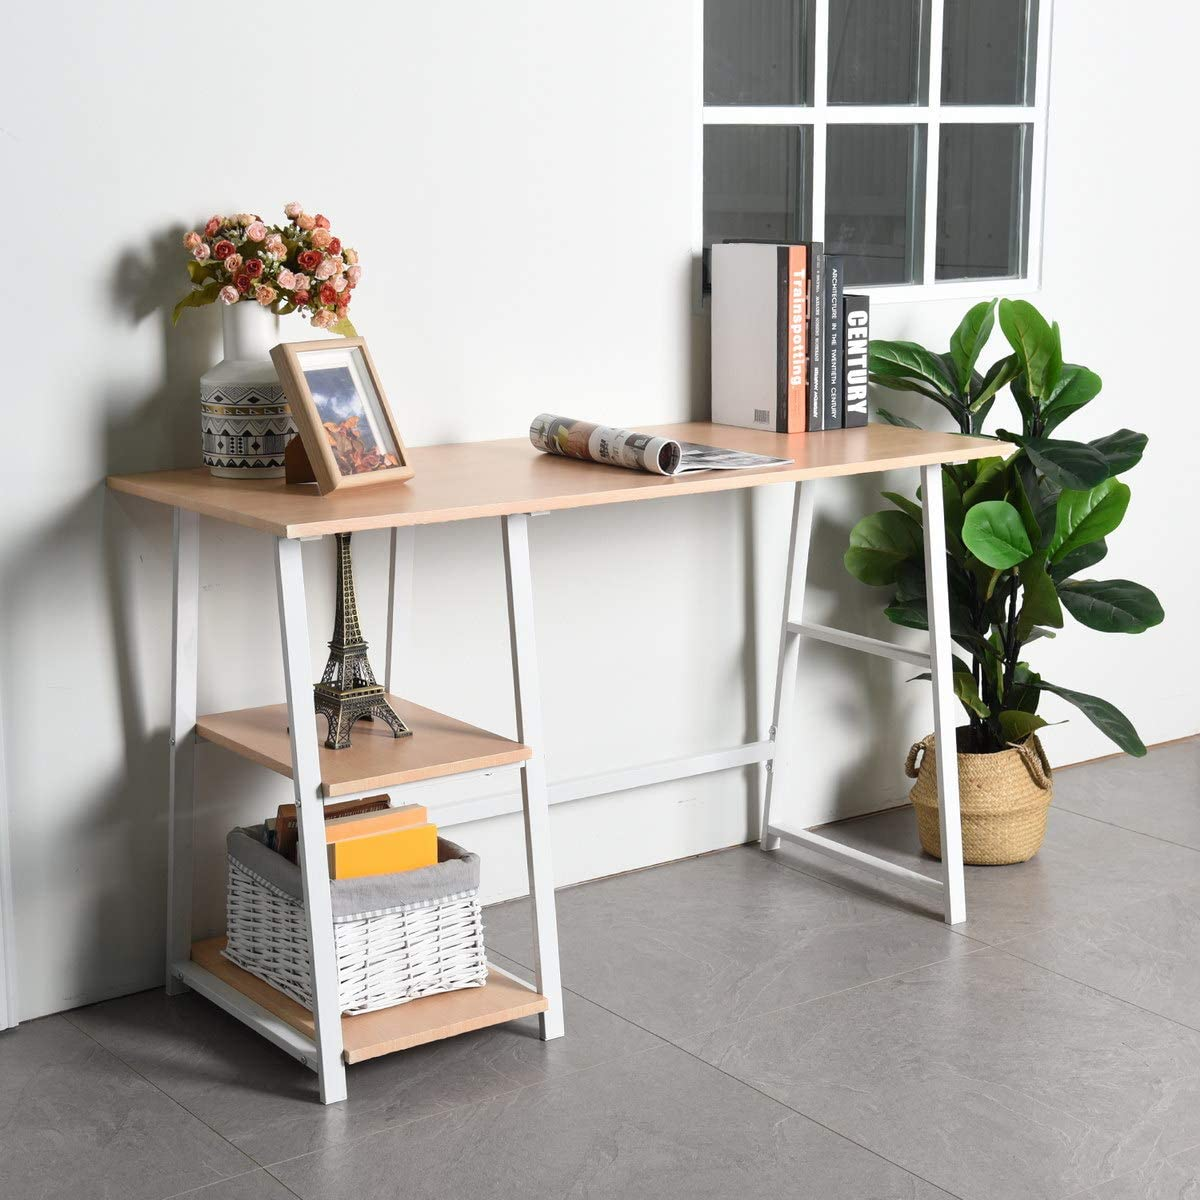 redcolourful Wooden Desk with 2 Storage Leisure Max 76% Portland Mall OFF Modern Racks